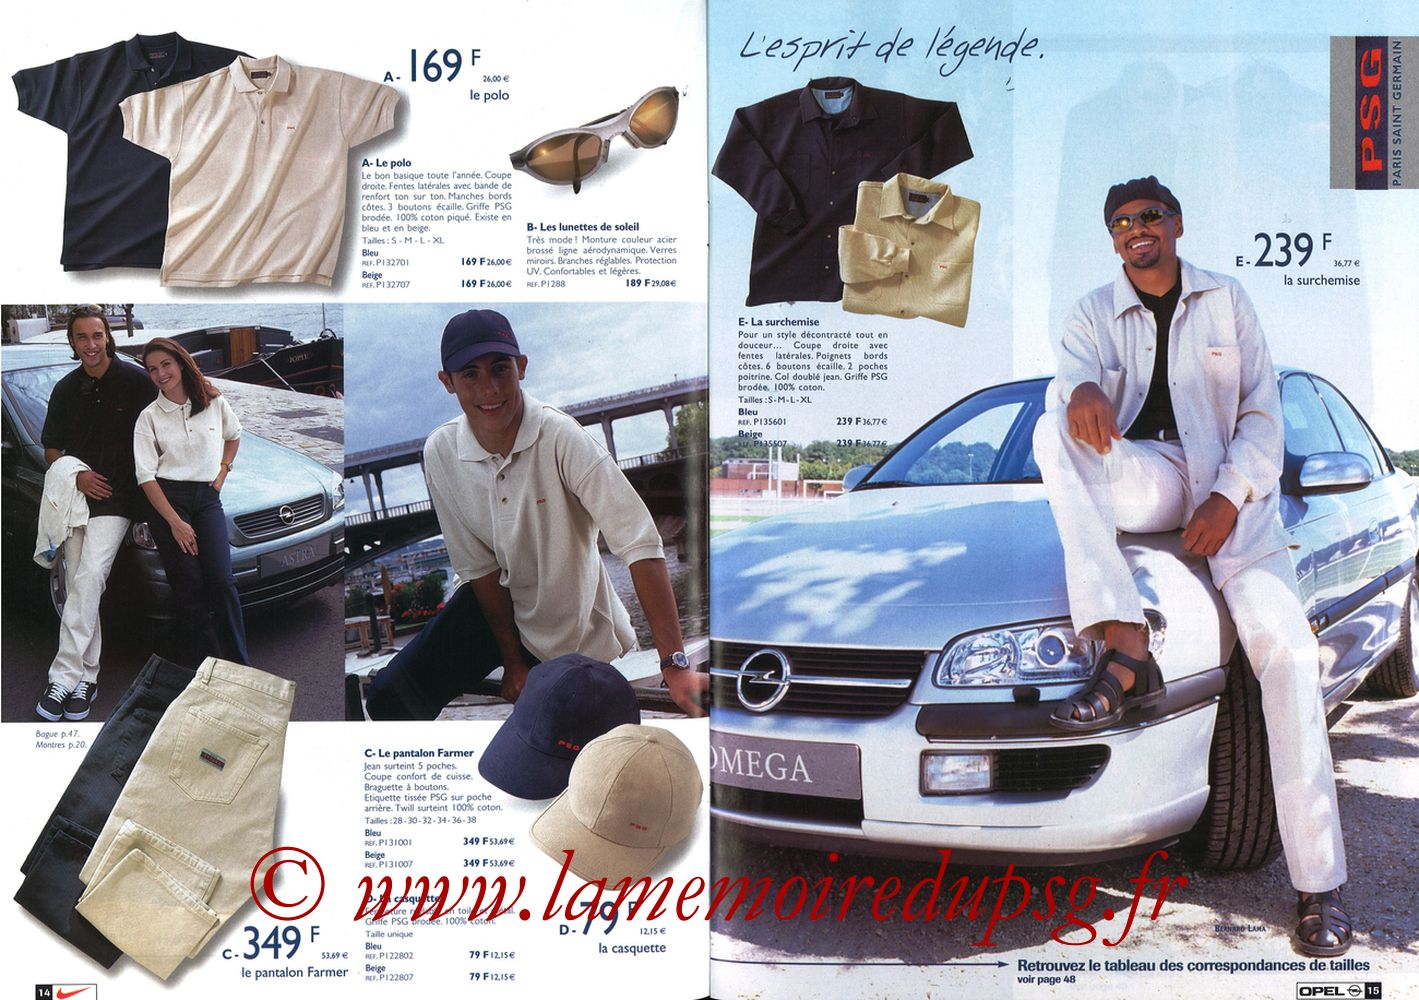 Catalogue PSG - 1998-99 - Pages 14 et 15